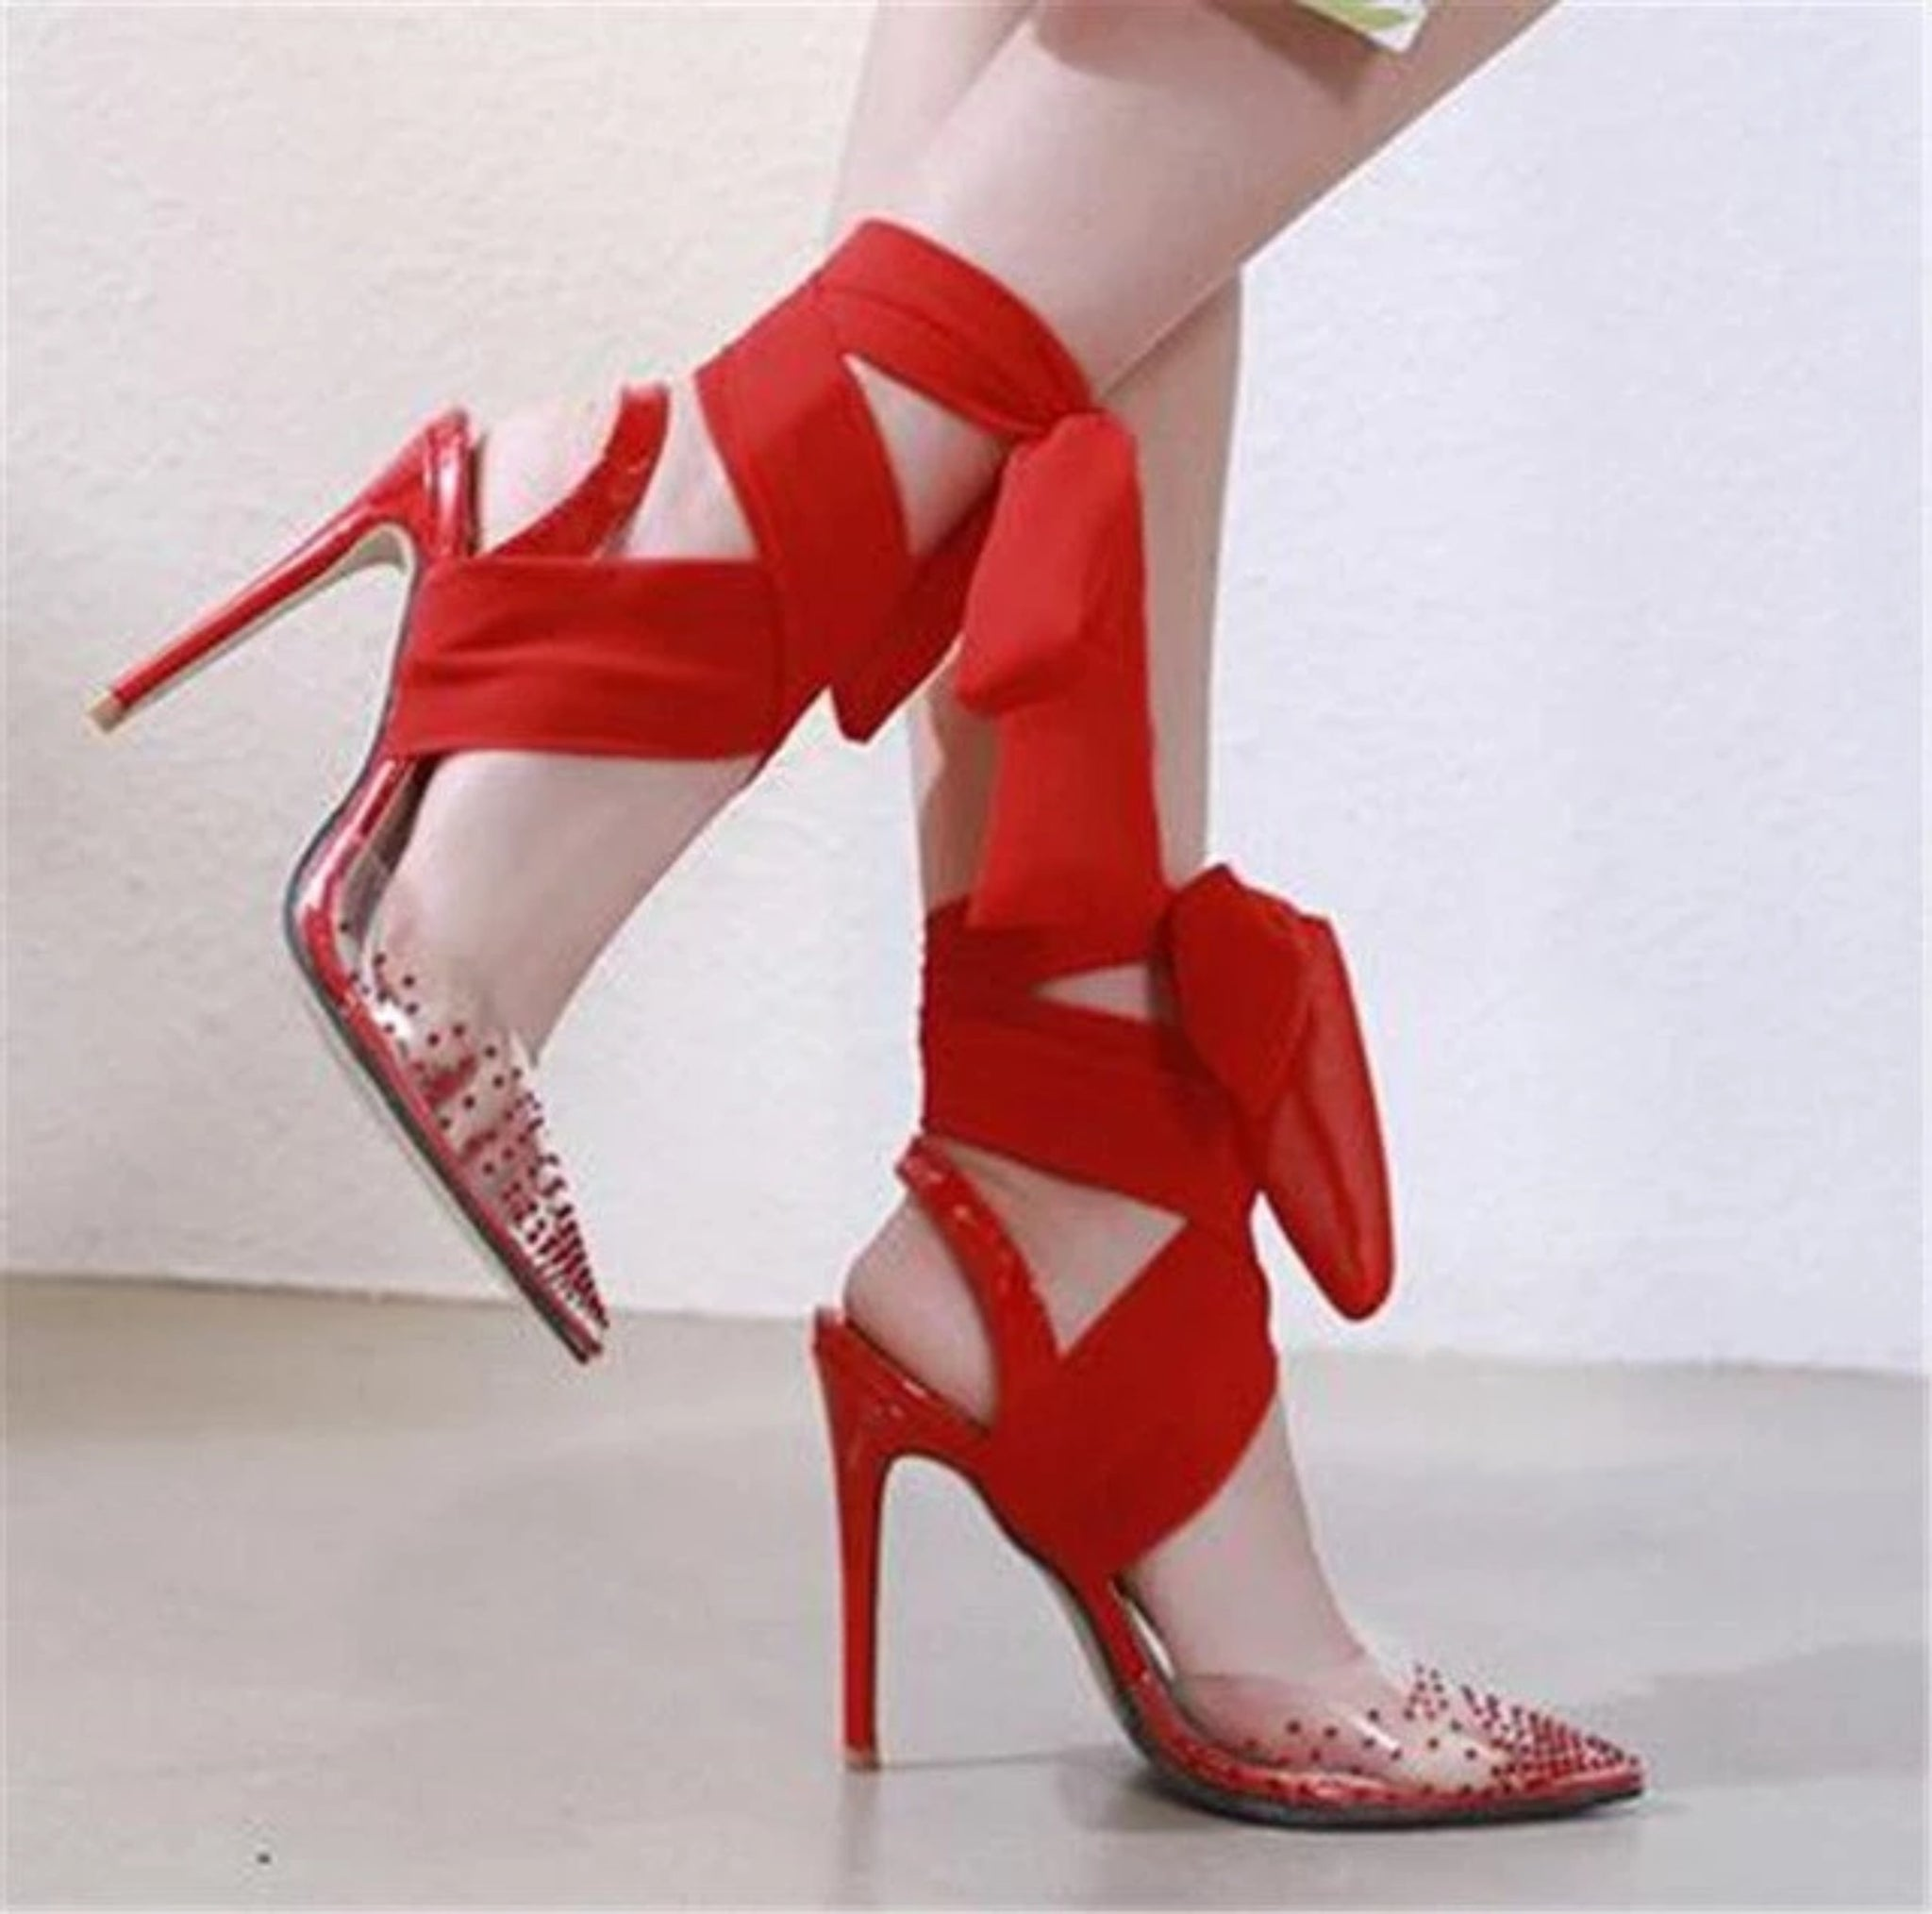 Audrey - The Rhinestone Ankle Strap Stiletto - Izzabel